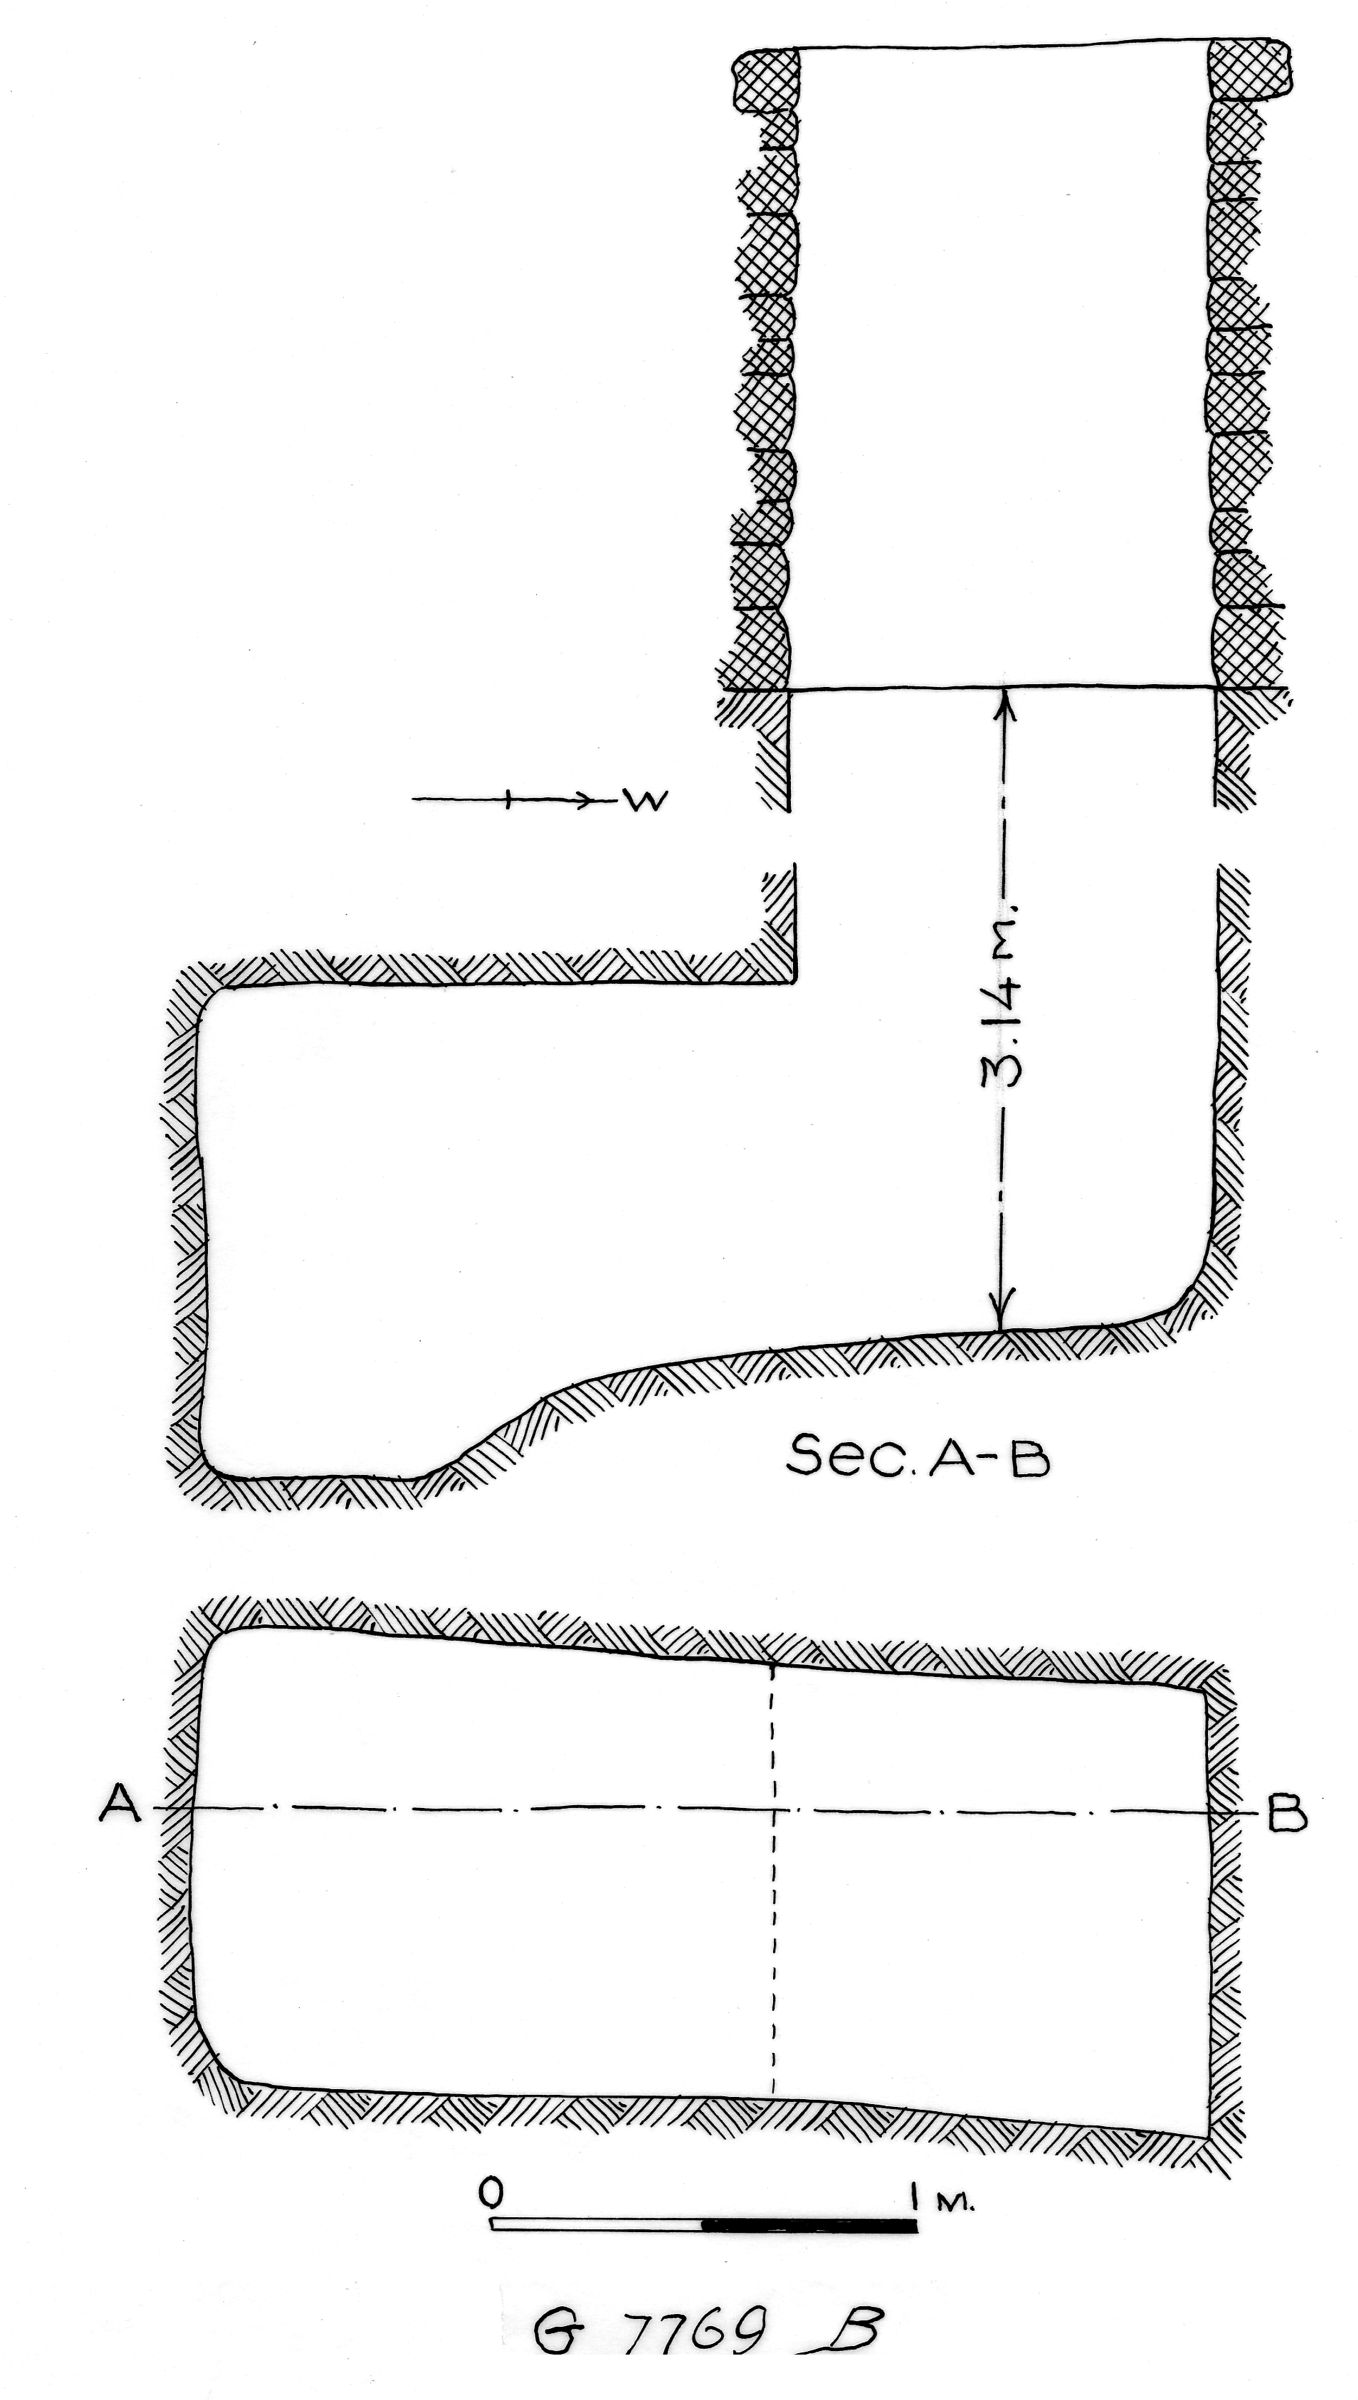 Maps and plans: G 7769, Shaft B